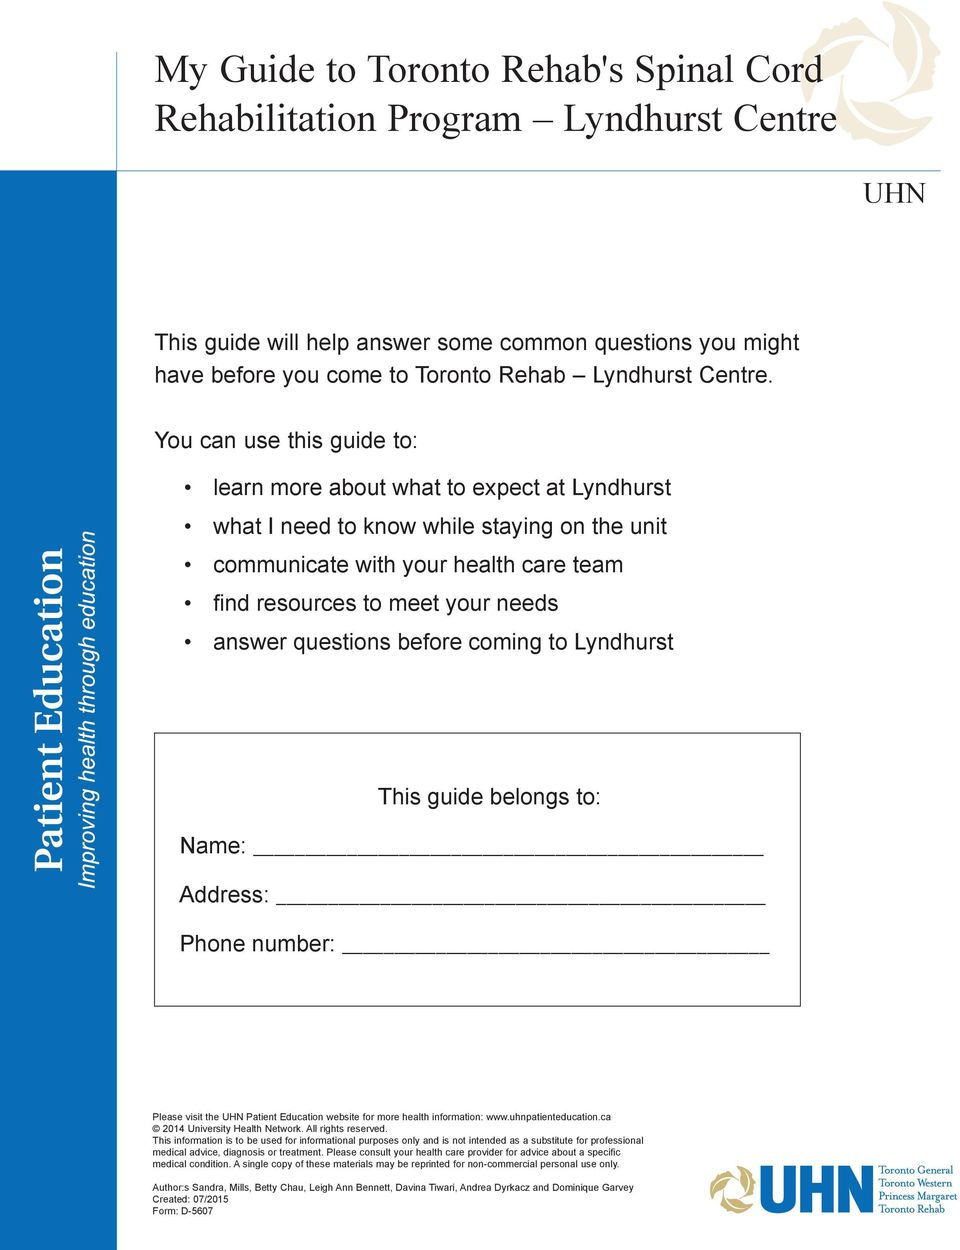 questions before coming to Lyndhurst This guide belongs to: Name: Address: Phone number: Please visit the UHN Patient Education website for more health information: www.uhnpatienteducation.